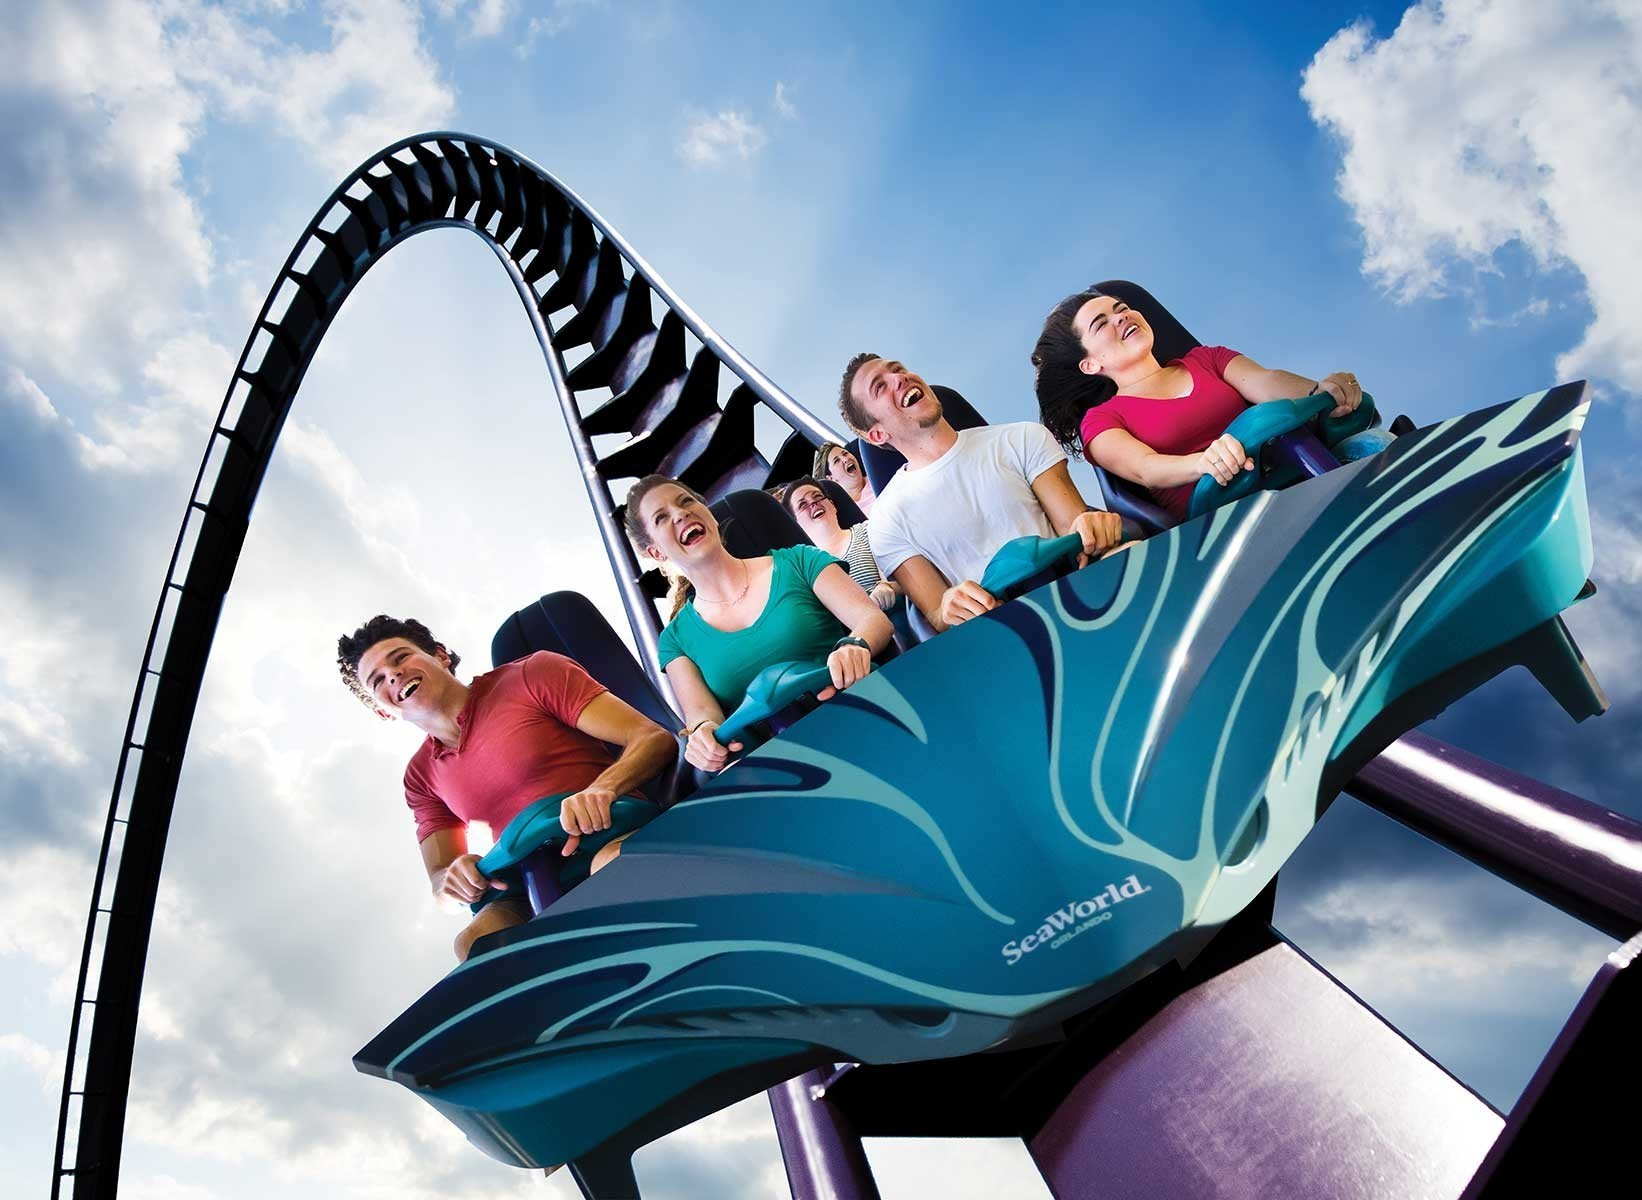 Slide 6 of 19: Named after the sleek and speedy pelagic shark, Mako at SeaWorld Orlando is Orlando's tallest, fastest, and longest roller coaster. You'll fly up to 61 metres (200 feet) high and roar along at up to 118 kilometres (73 miles) per hour while shrieking with delight.